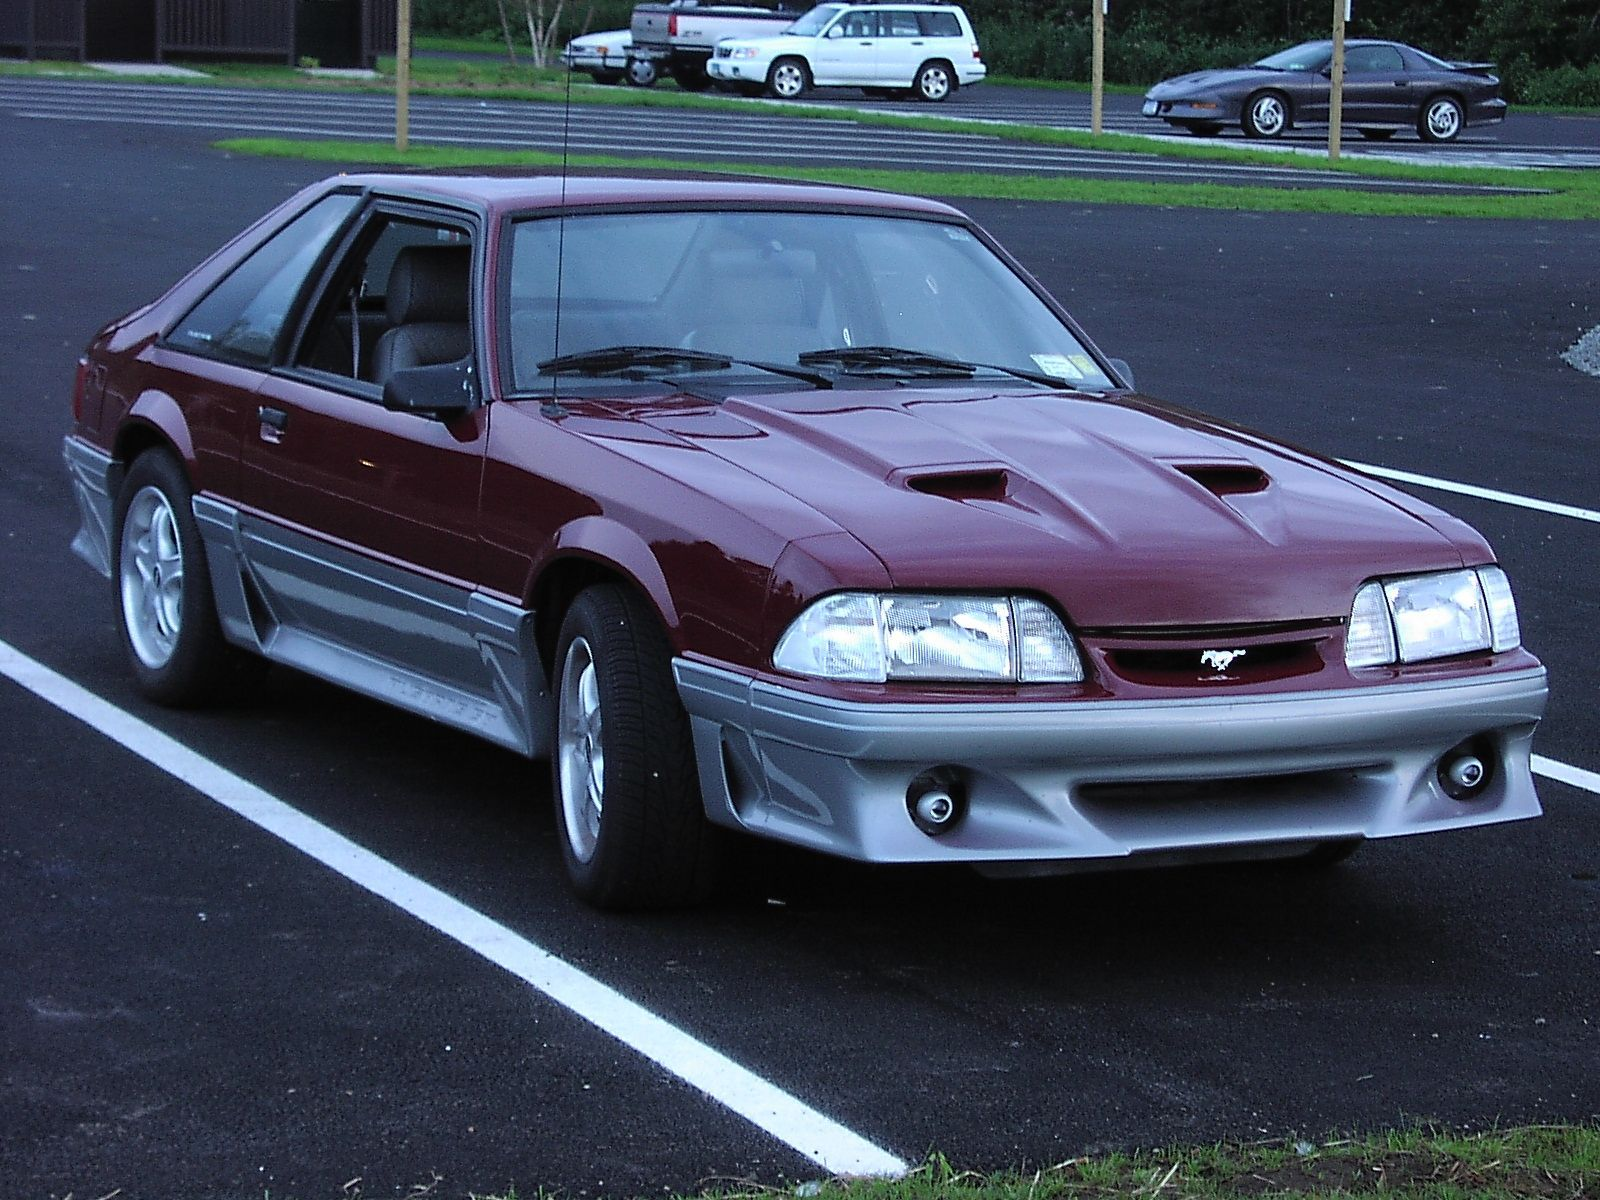 1987 Mustang Gt Mustangclassiccars Mustang Ford Mustang Mustang Years